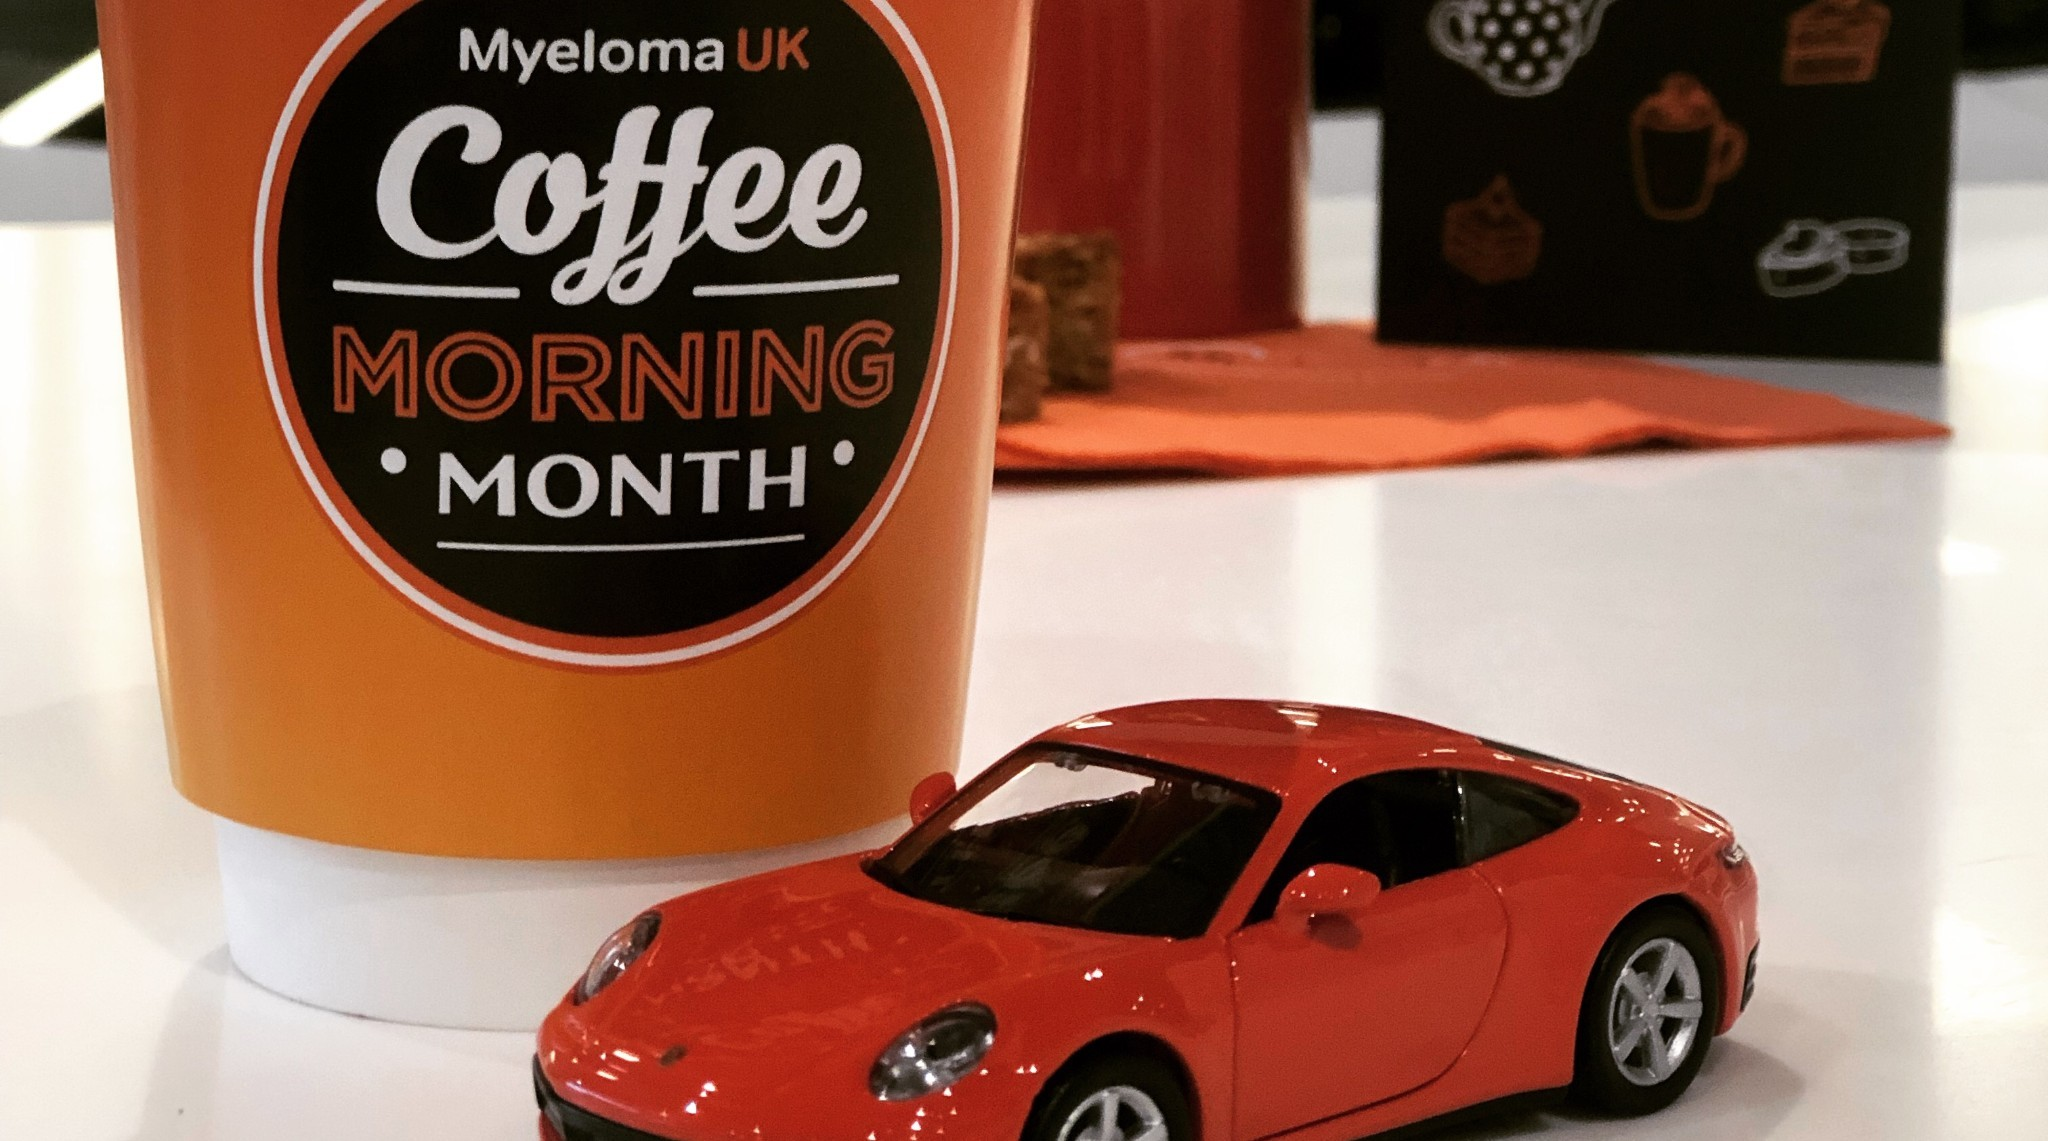 Porsche Swindon Hold Myeloma UK Coffee Morning